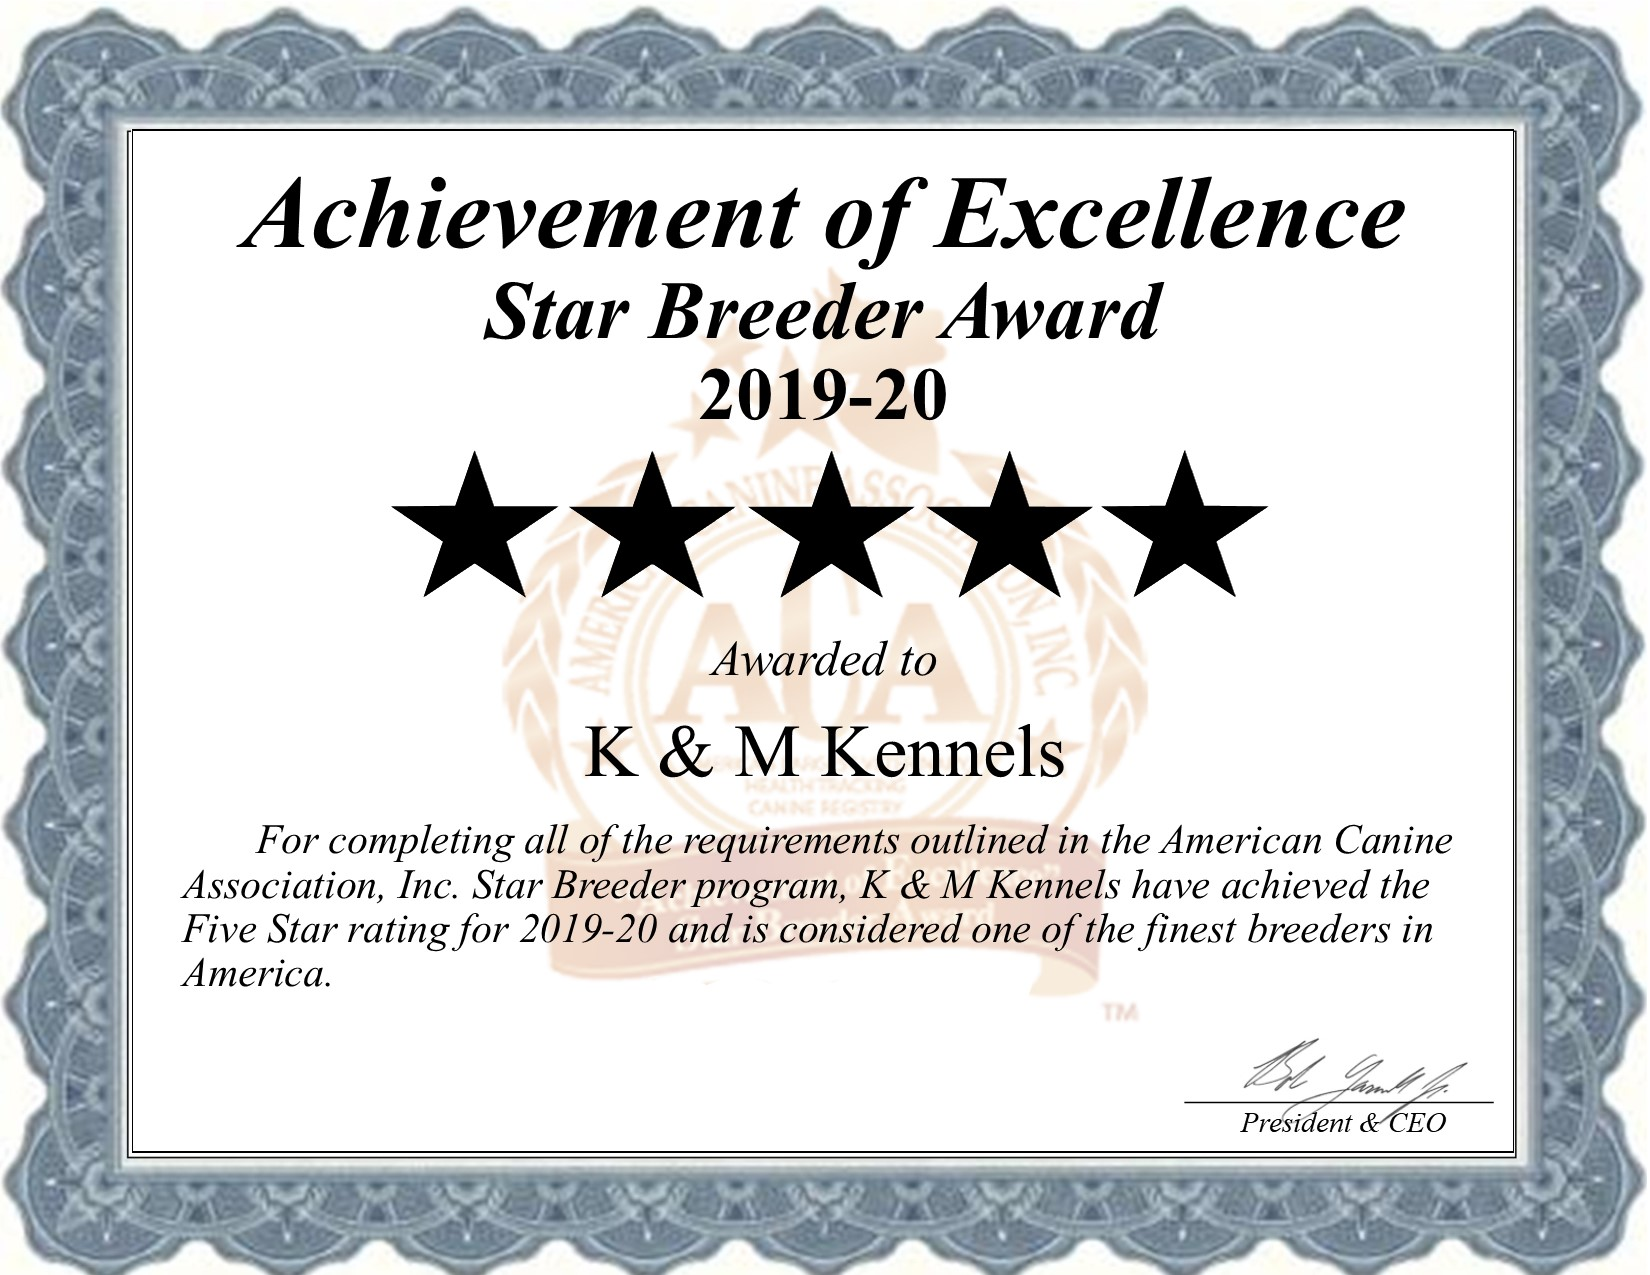 K&M, kennels, K, and, M, kennel, certificate dog, breeder, dog_breeder, kennel, star breeder, star breeder, mount, joy, pa, pennsylvania, county, usda, puppy, puppies, ACA, ICA